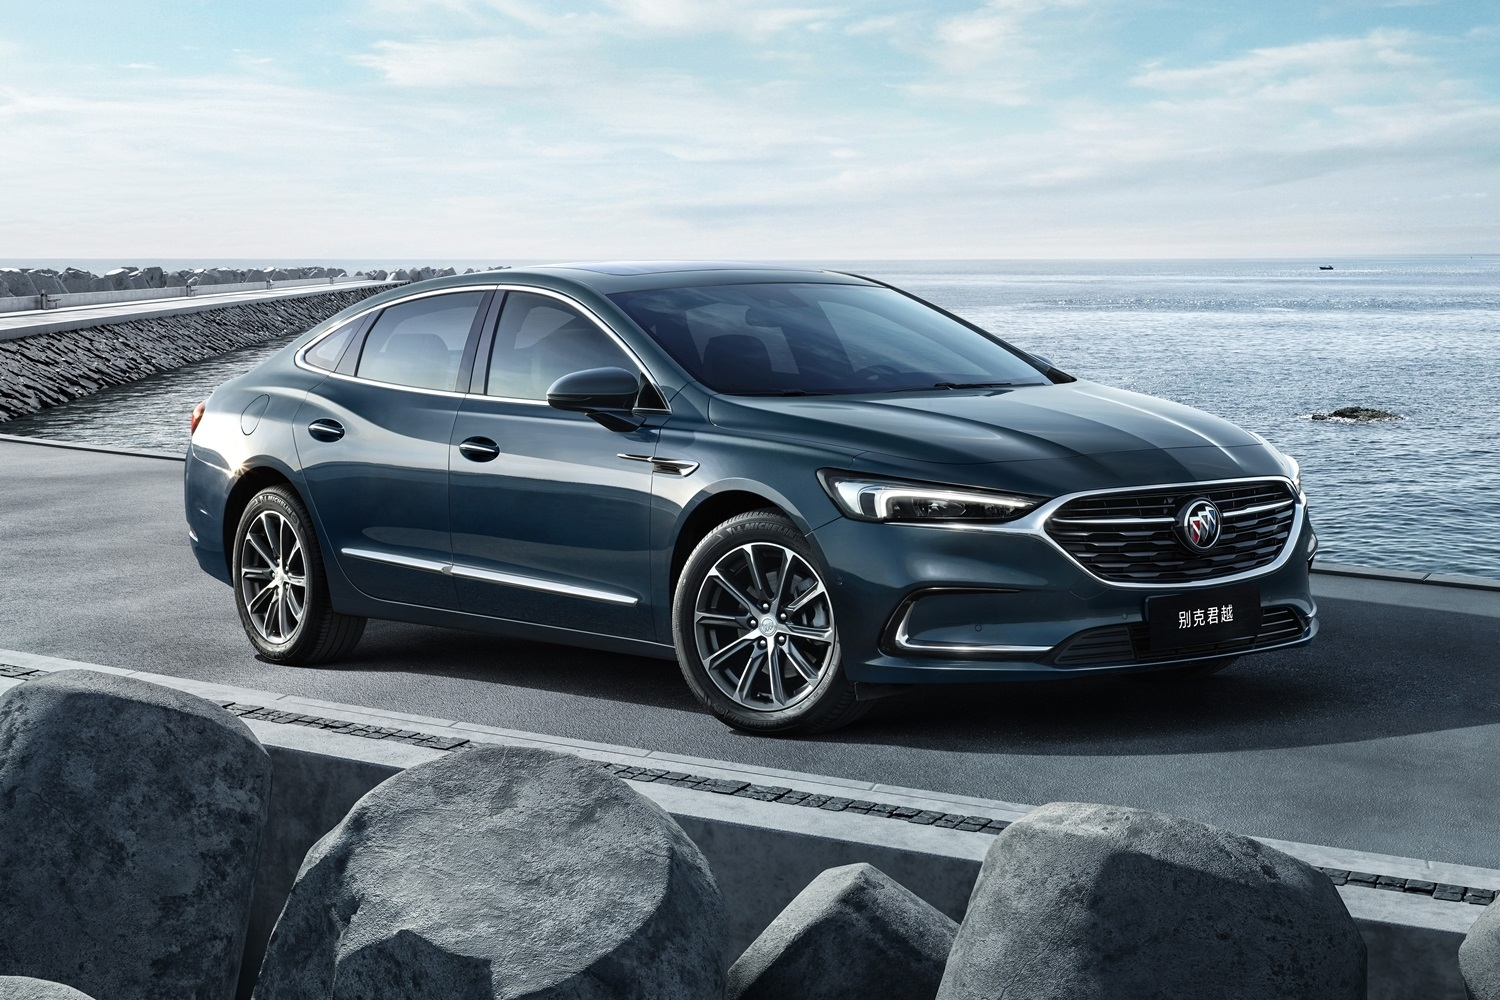 2021 Buick Lacrosse Gets More Refined Than Ever | Gm Authority New 2022 Buick Lacrosse Price, Gas Mileage, Horsepower